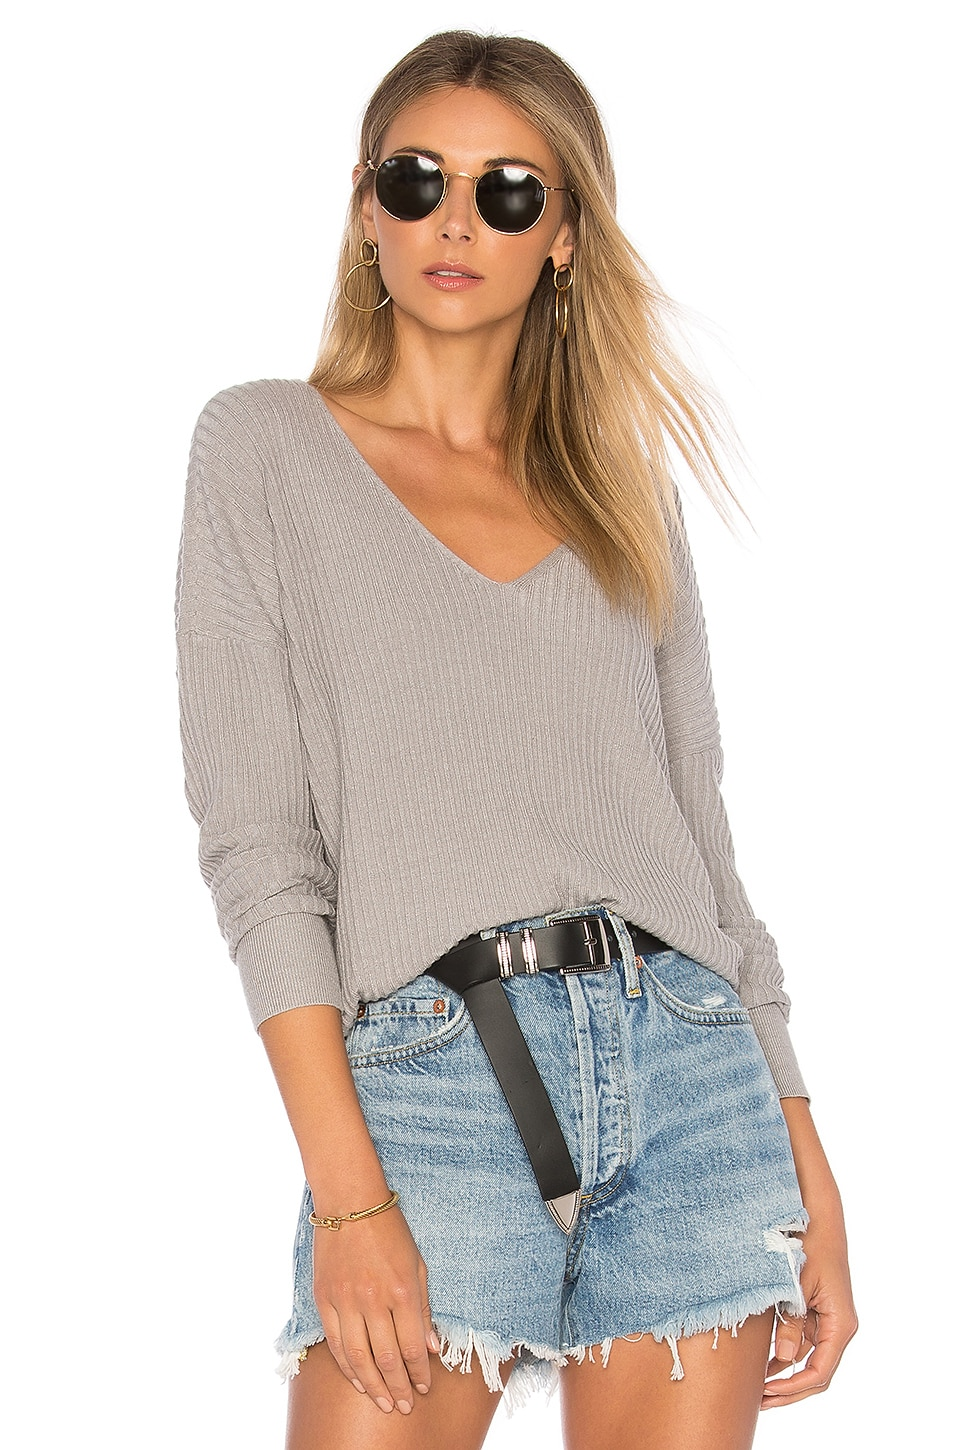 House of Harlow 1960 x REVOLVE Miles Pullover in Dust